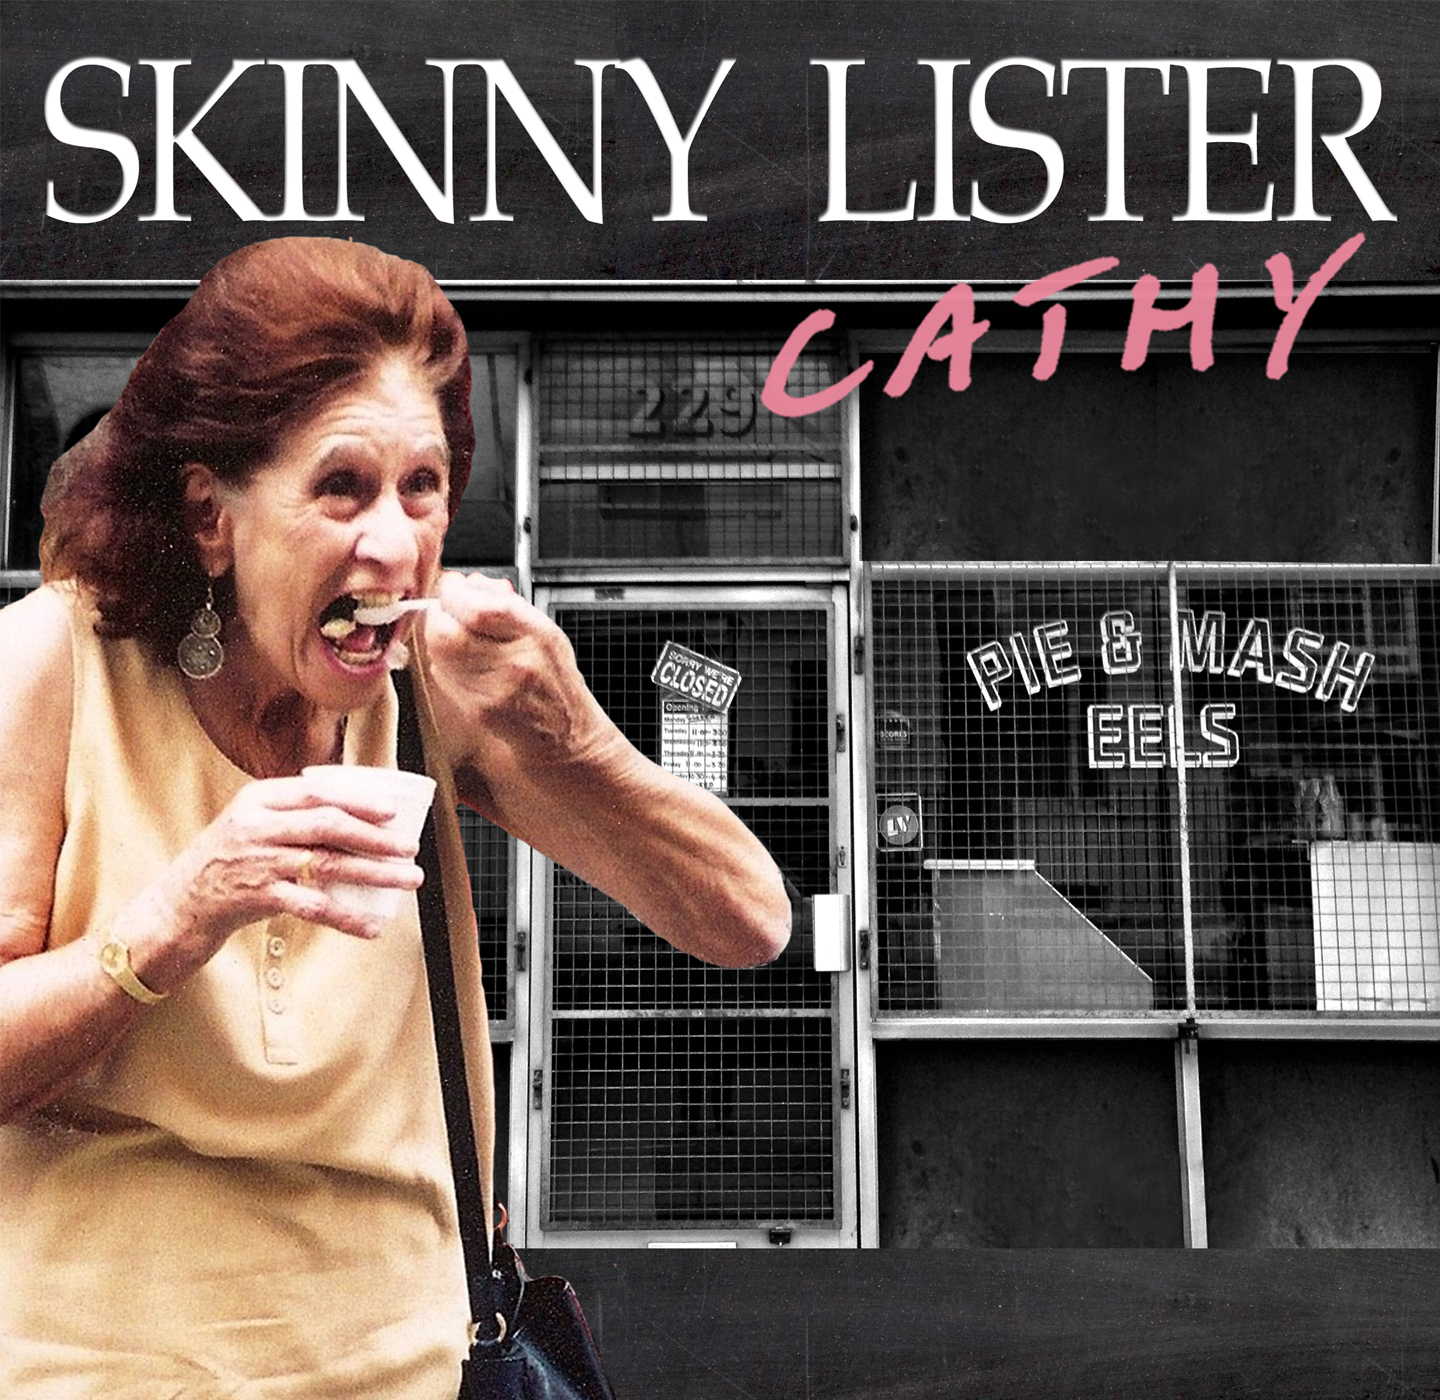 'Cathy' Video Premiere!